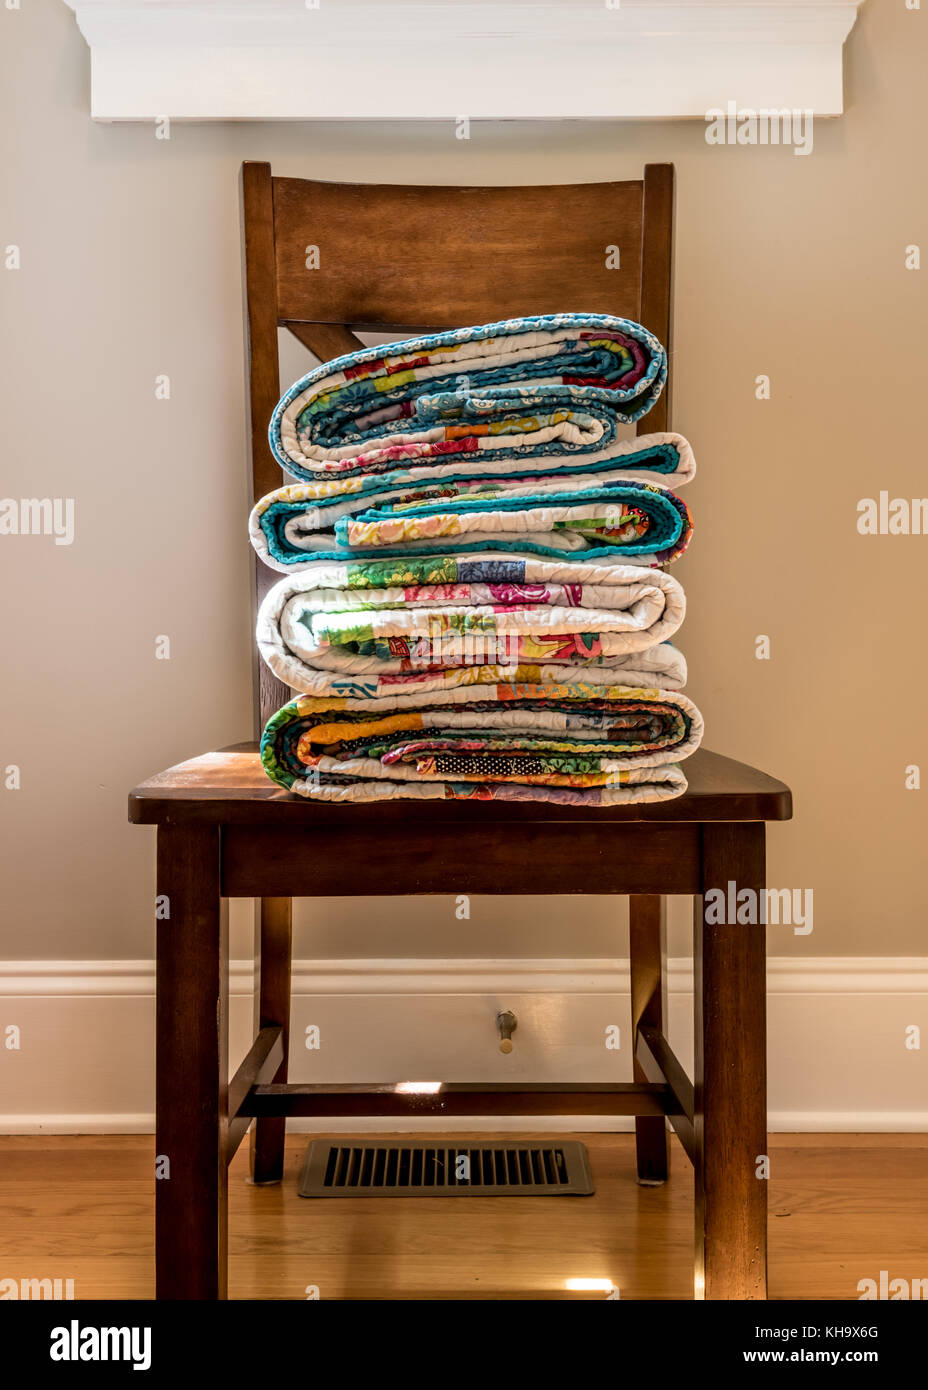 Folded End of Quilts on Kitchen Chair in sunlight - Stock Image